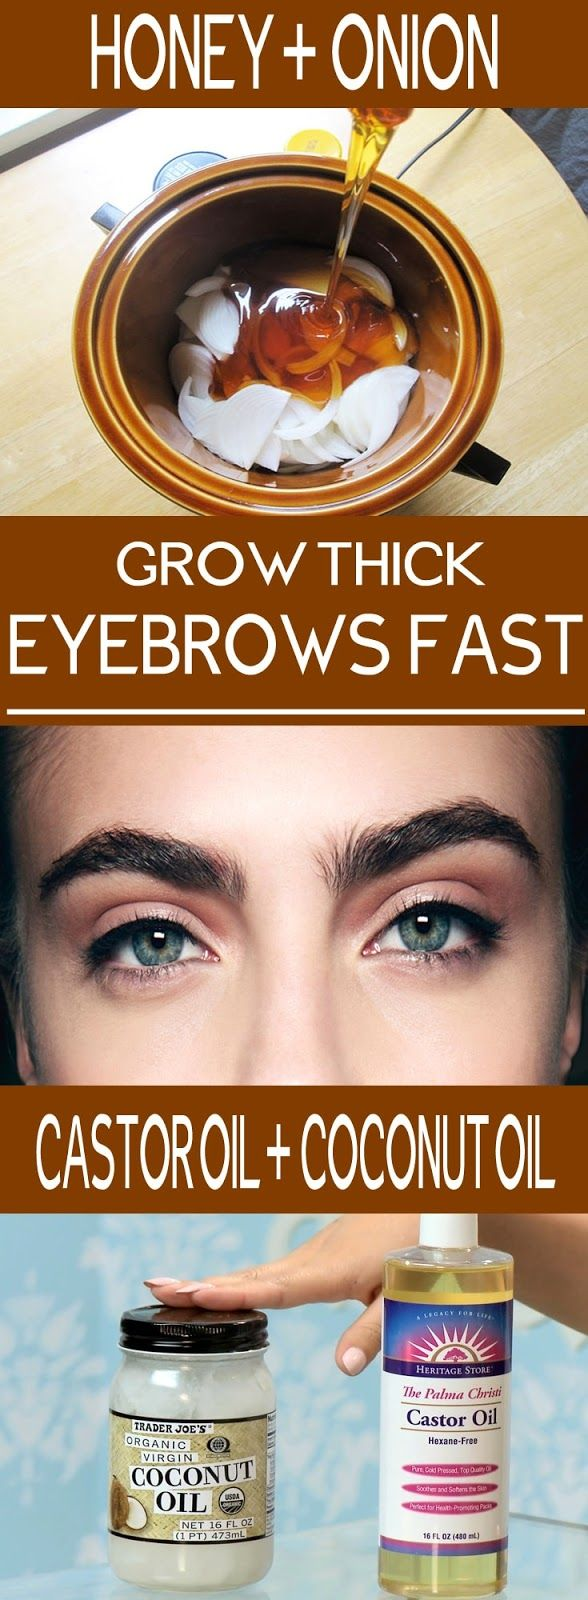 How To Grow Thicker Eyebrows Best Home Remedies Hair Skin And